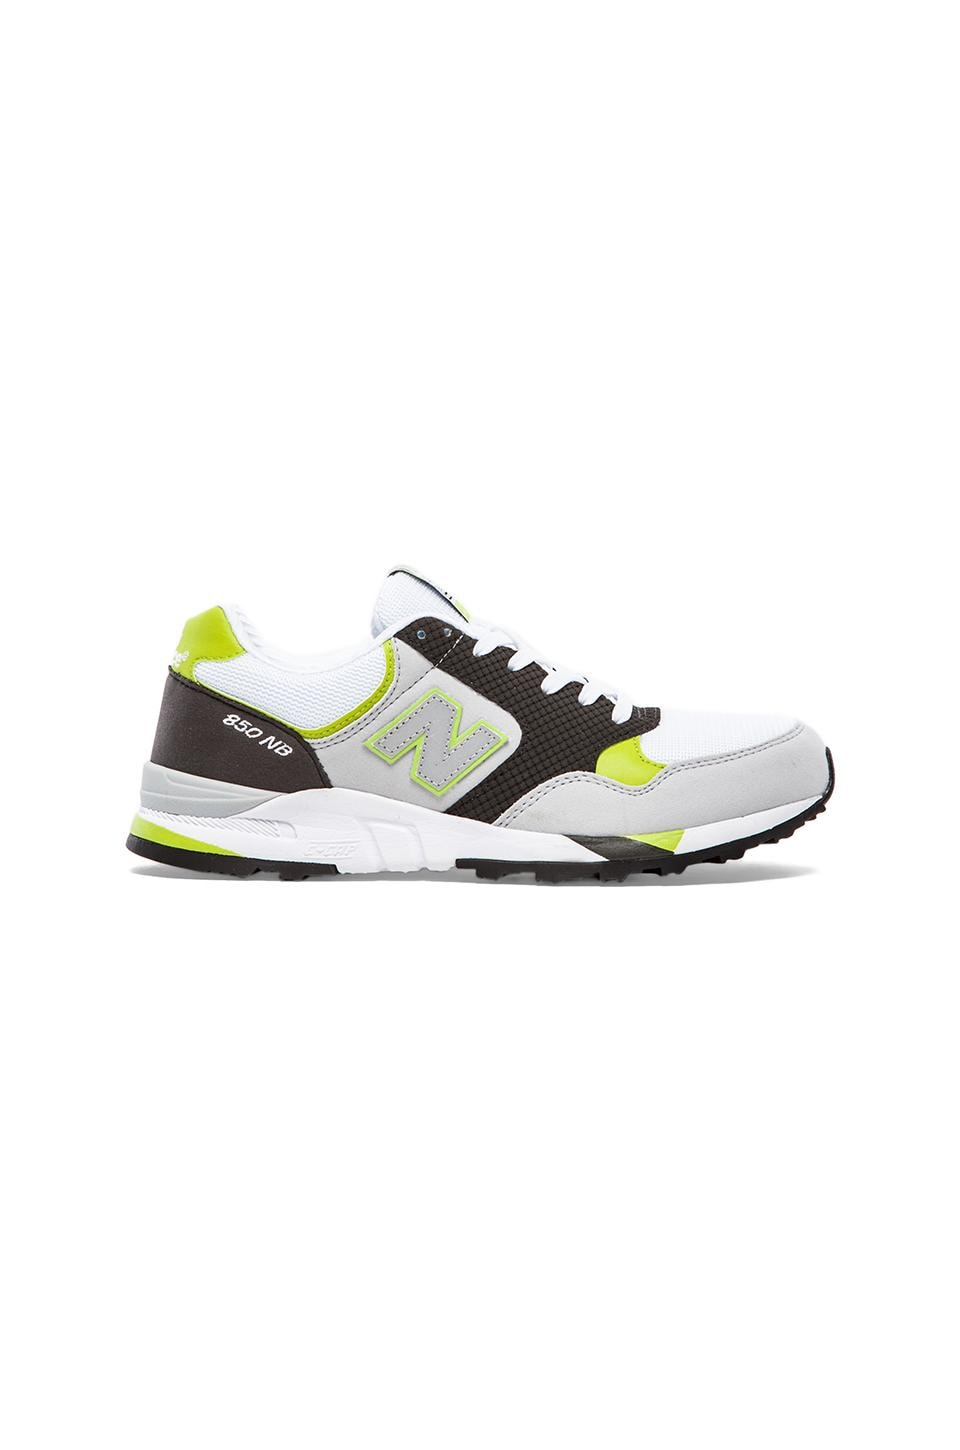 New Balance M850 in White/Green